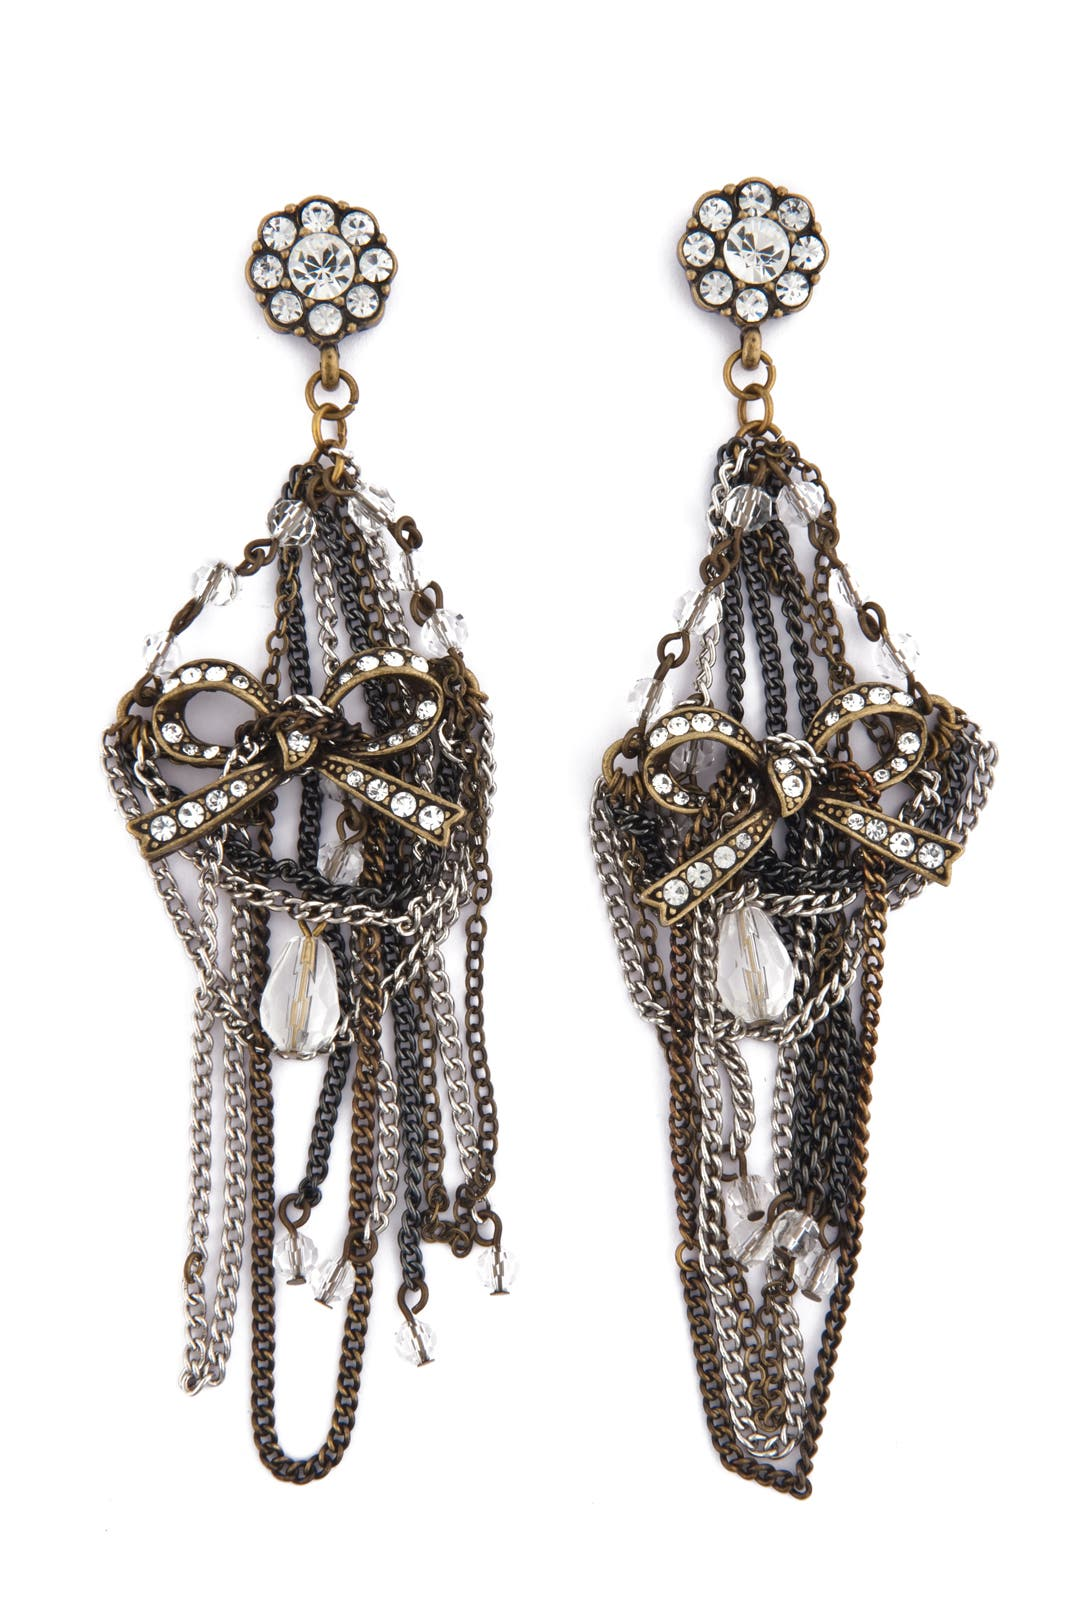 Chandelier Bow Earrings by Badgley Mischka Jewelry